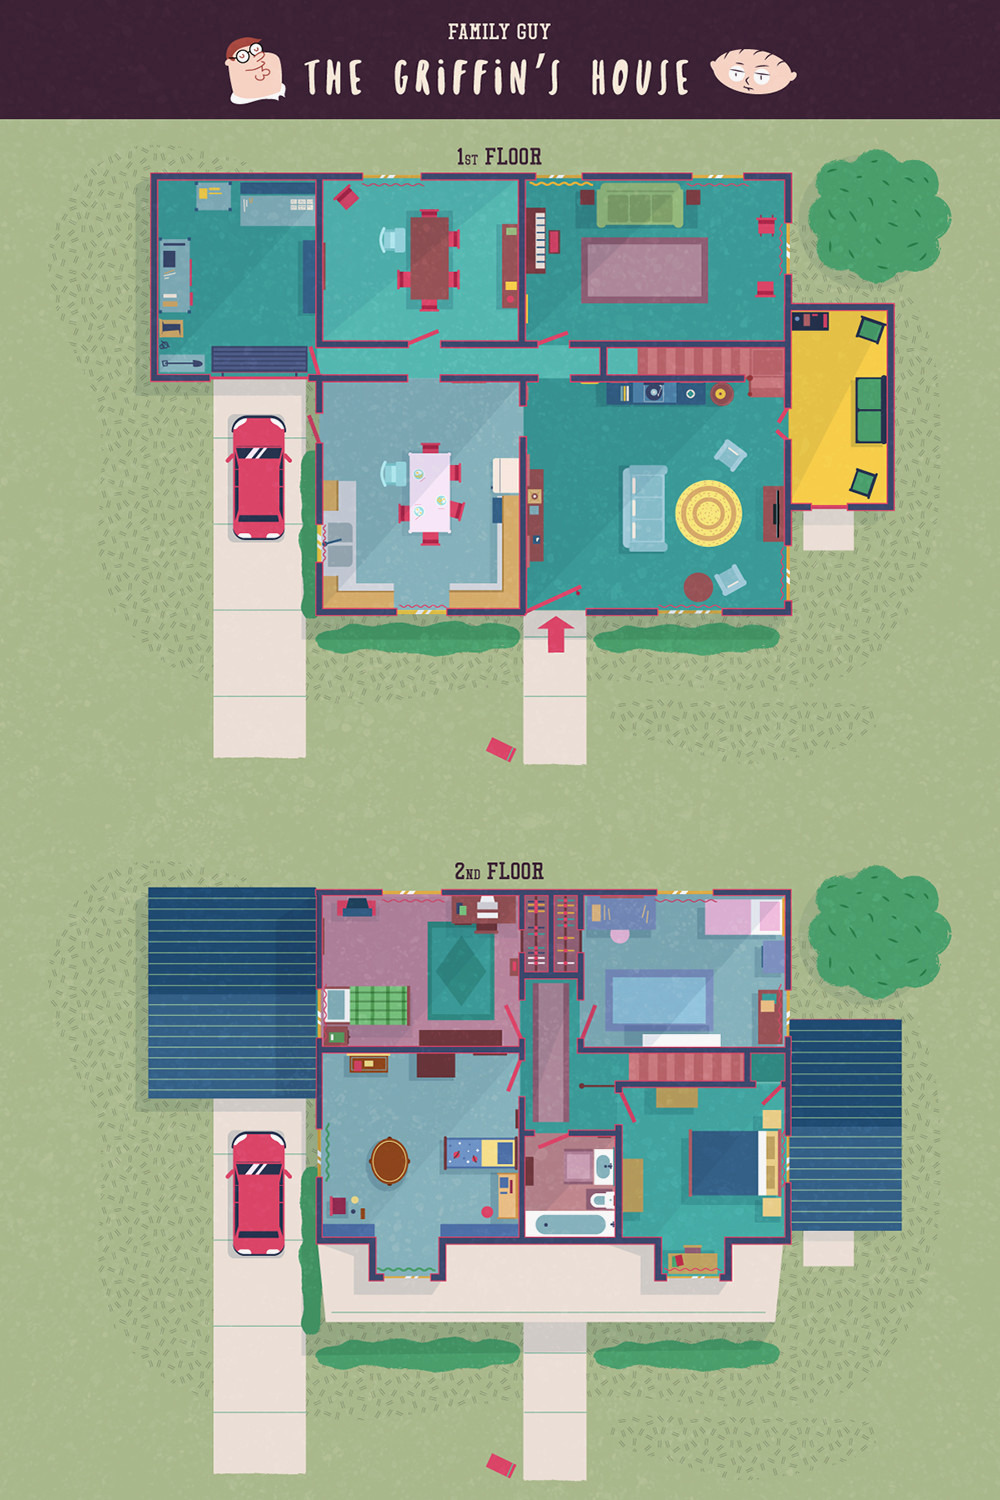 family guy house plans beautiful tv show floor plans from corrie will and grace peaky blinders and more of family guy house plans